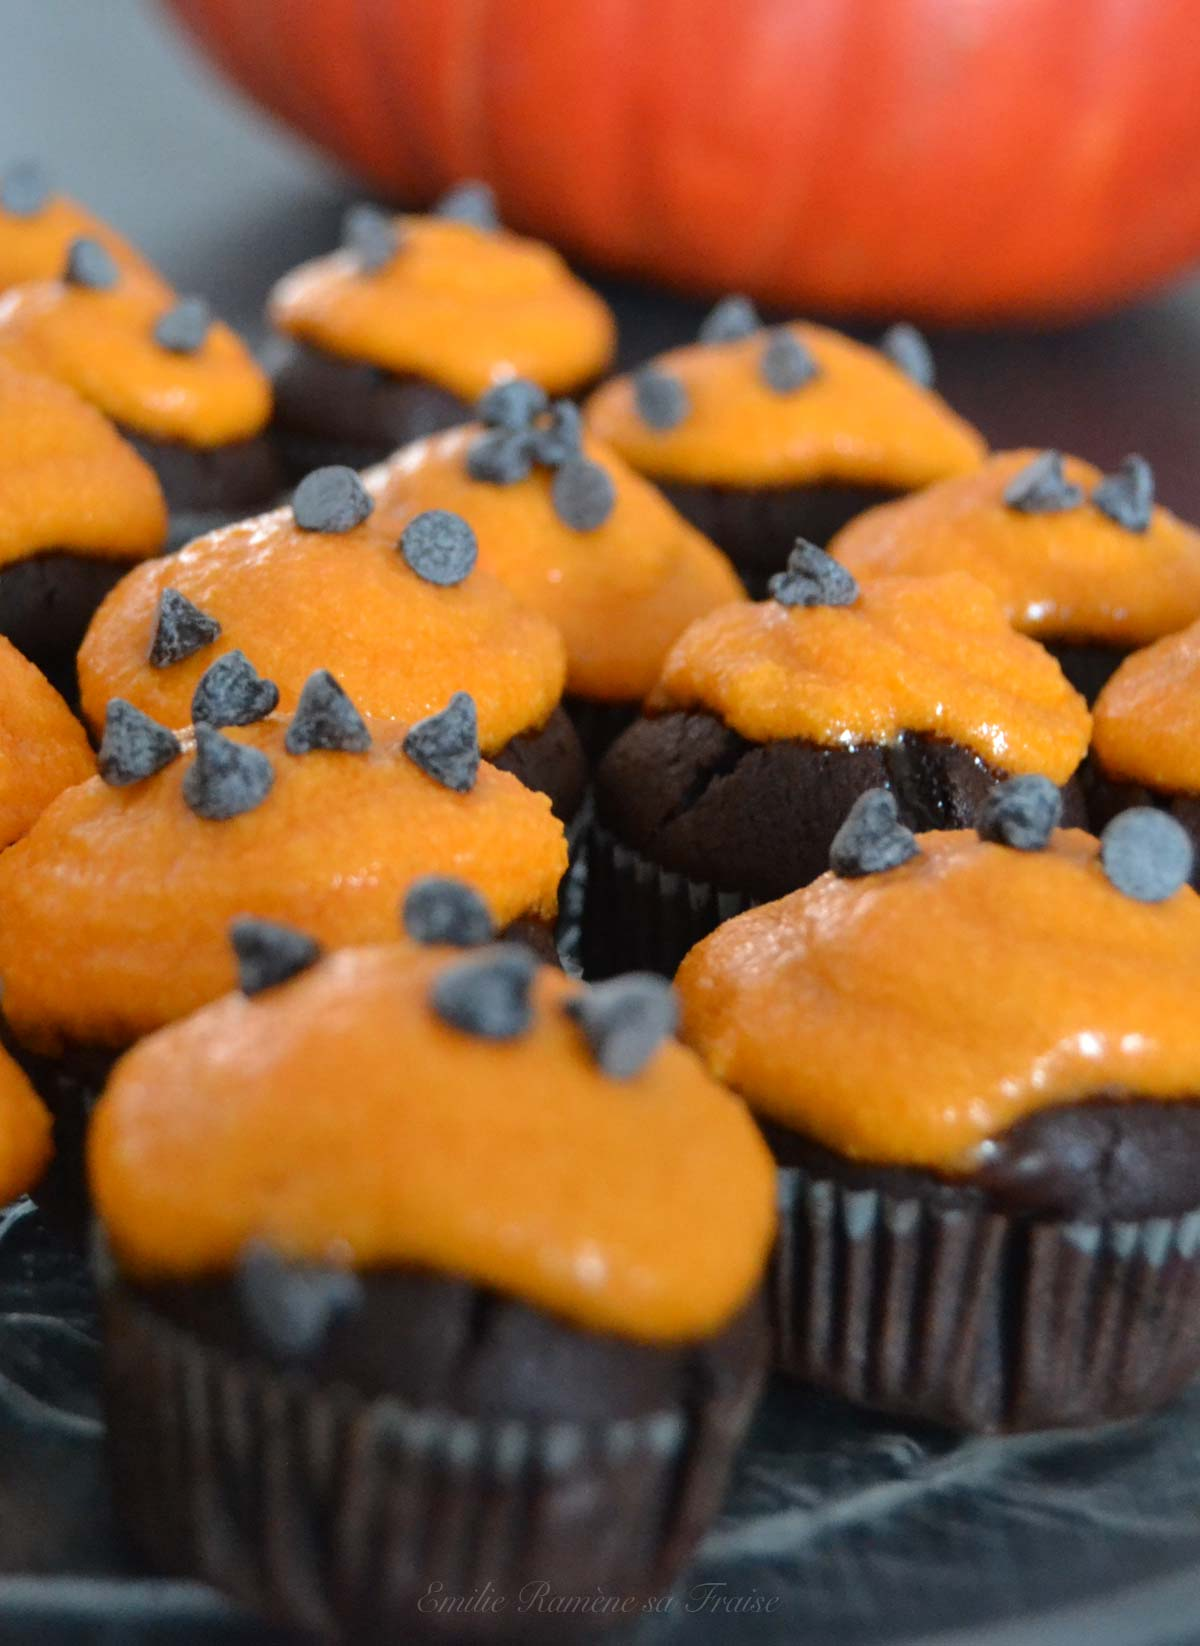 Cupcakes orange et chocolat